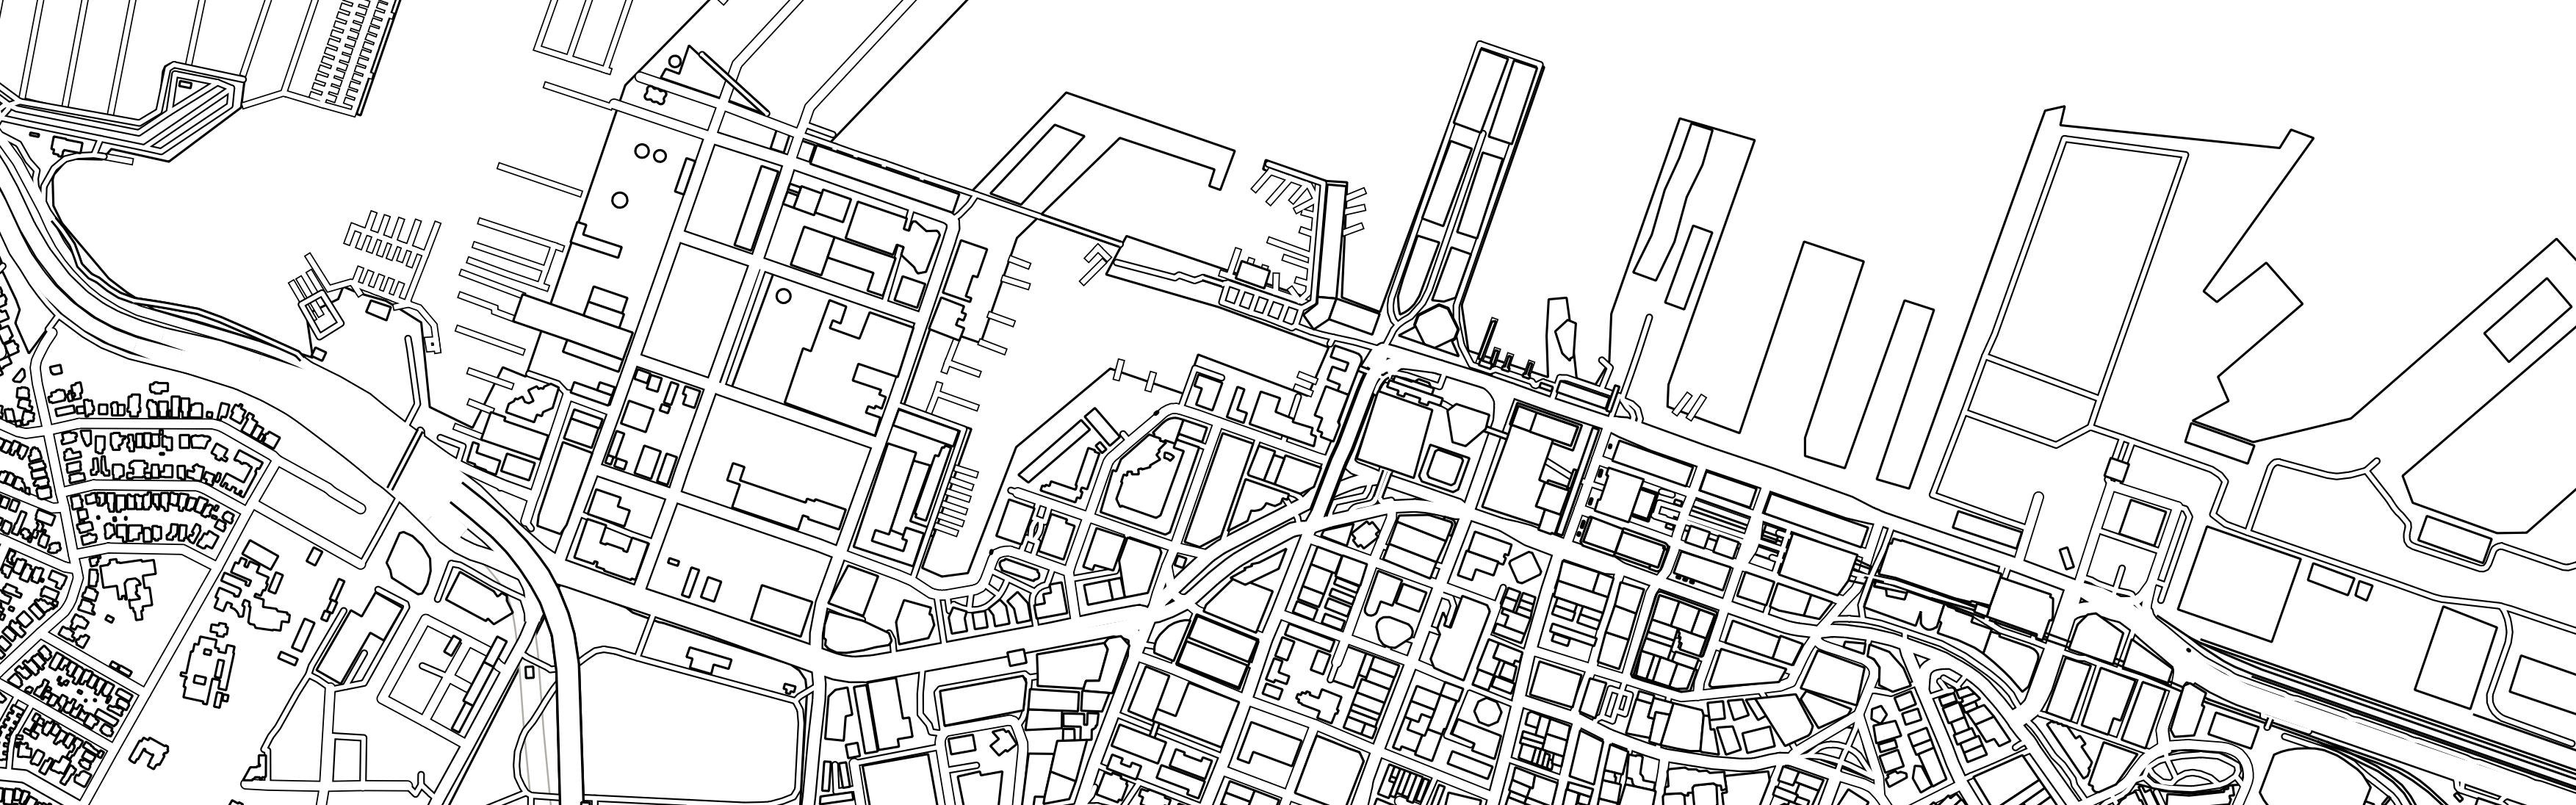 Identify the city from the blank street map Kiwi Edition The Map